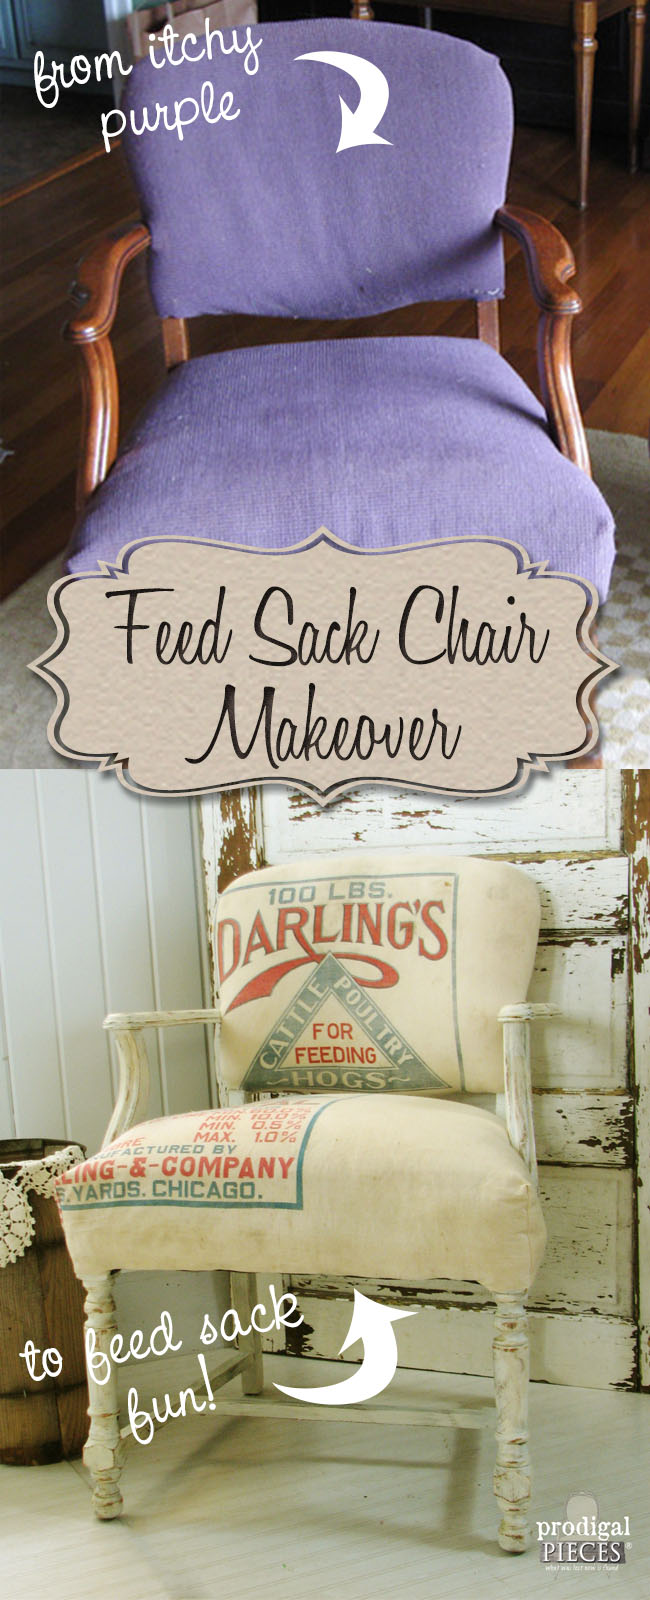 Vintage Chair Gets Feed Sack Makeover by Prodigal Pieces | prodigalpieces.com